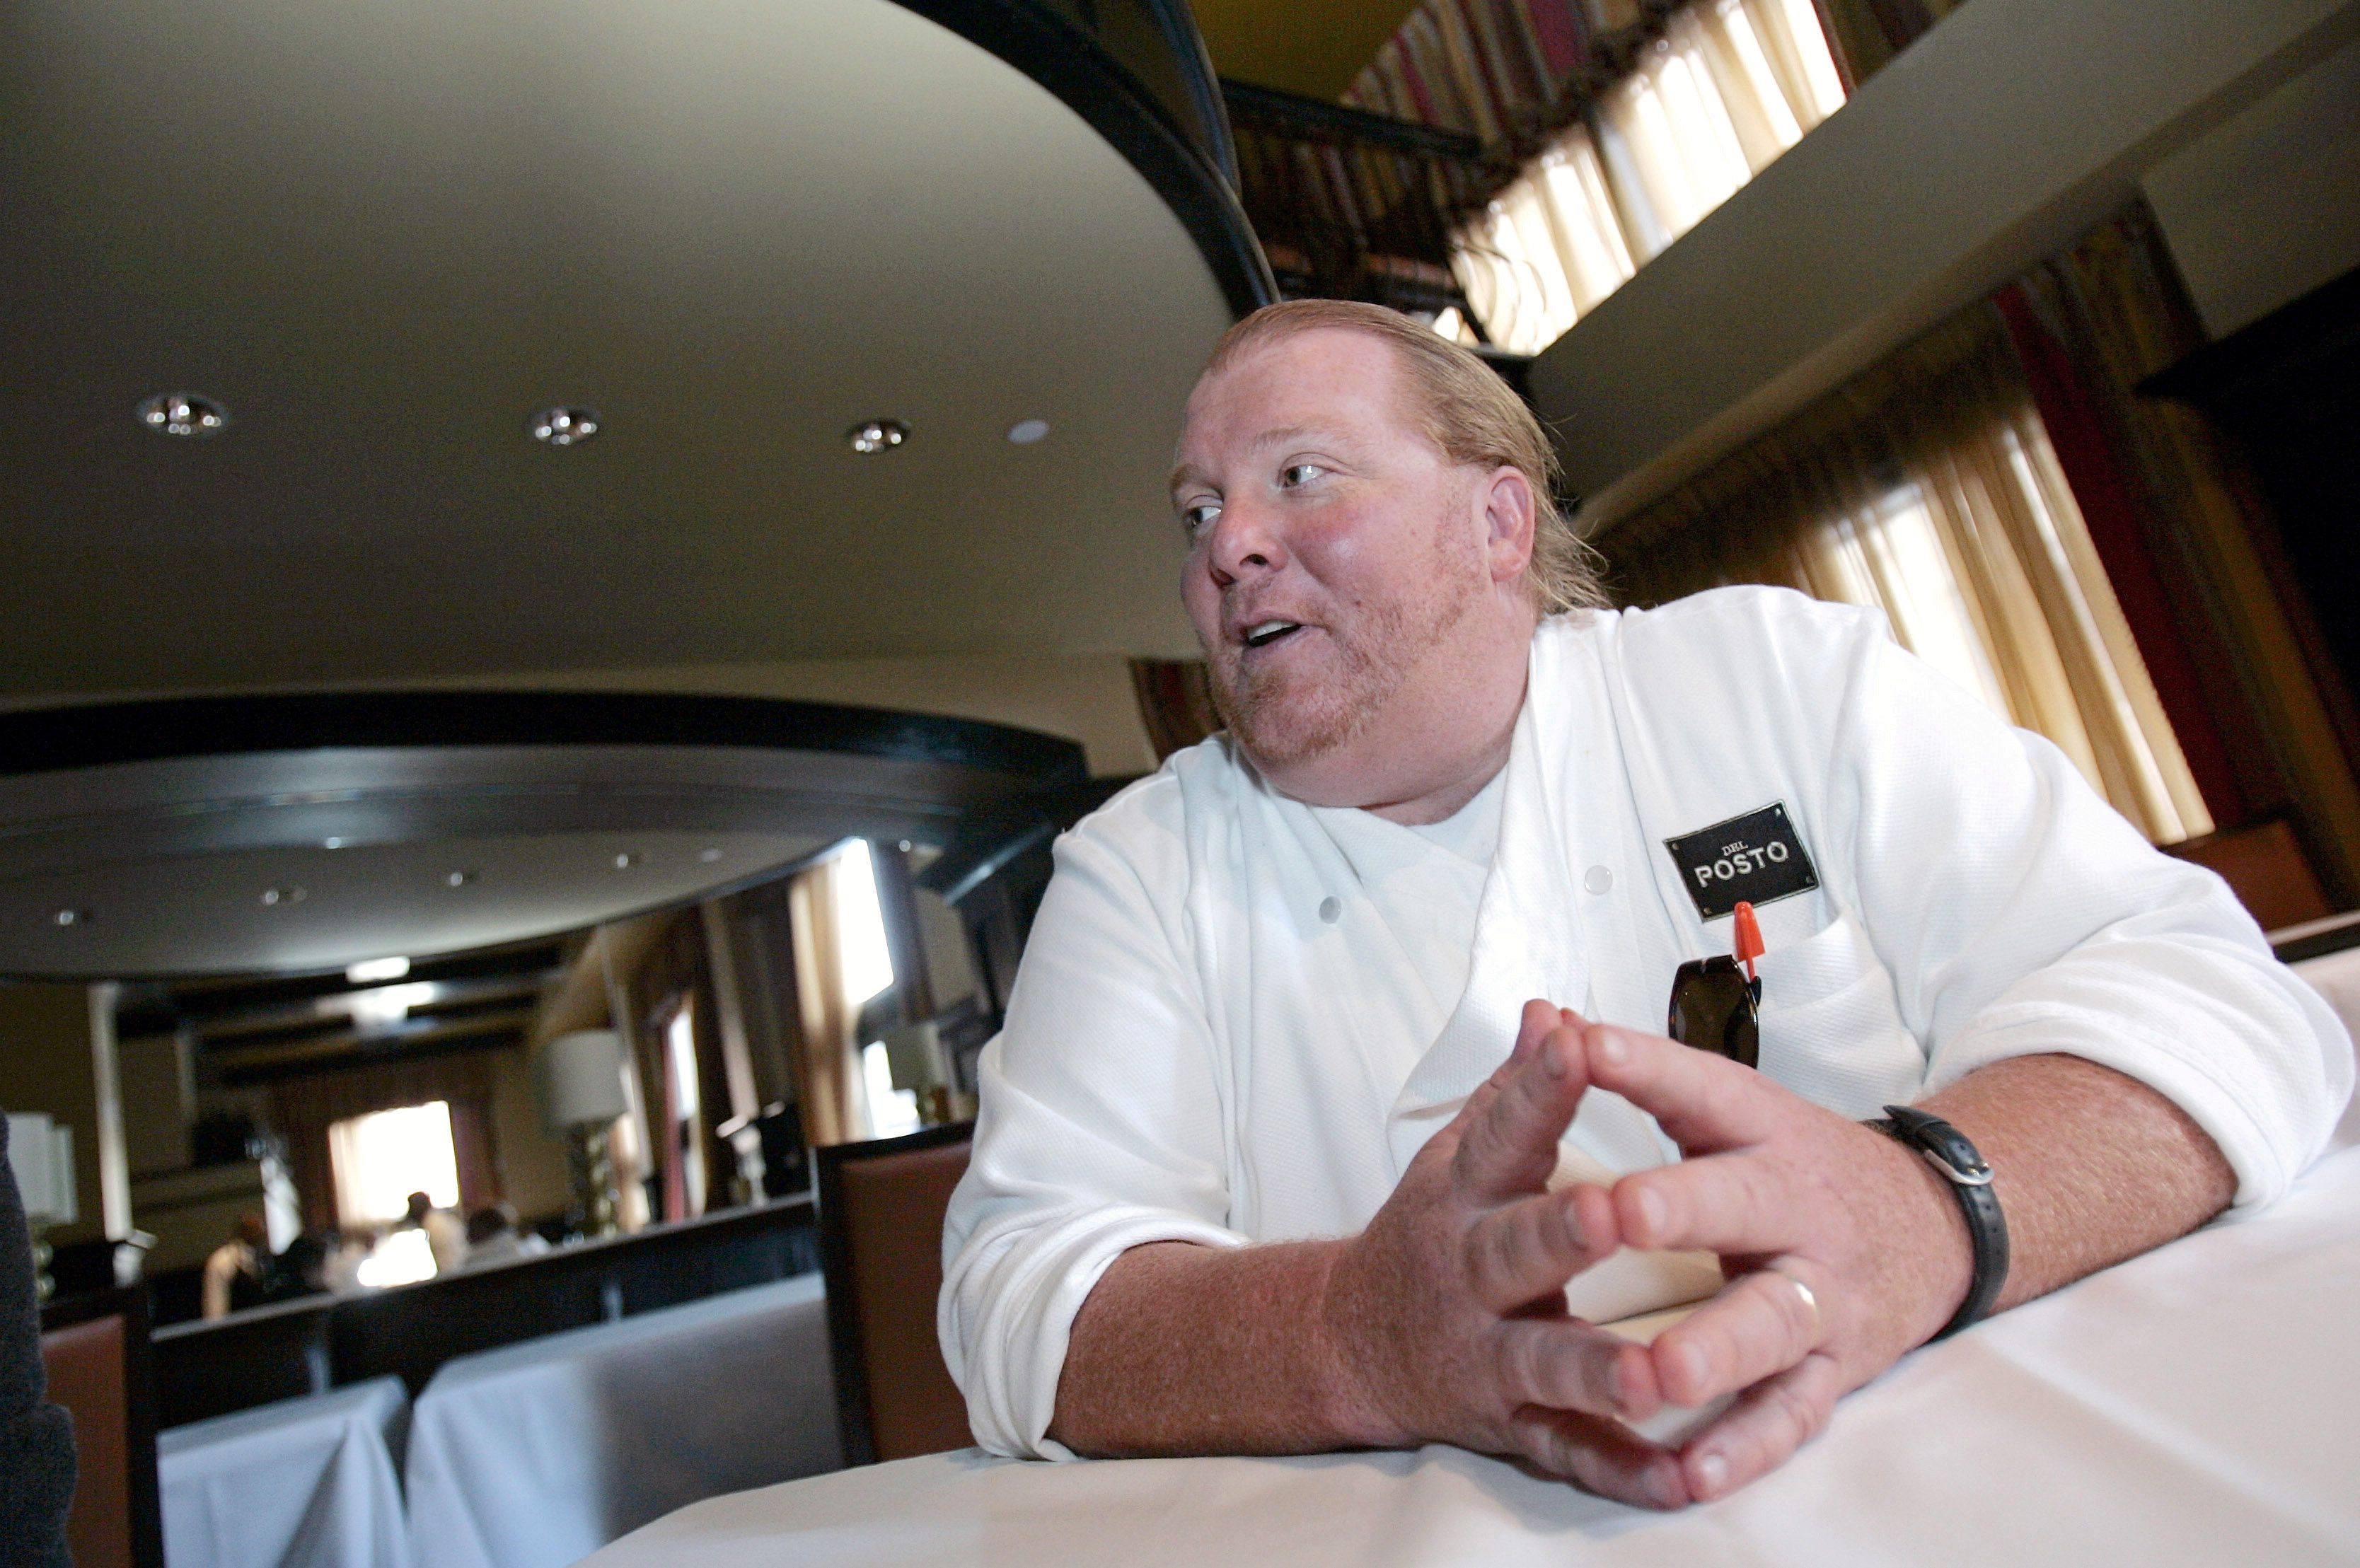 Celebrity chef Mario Batali has been accused of sexually assaulting several women. He has denied the allegations.